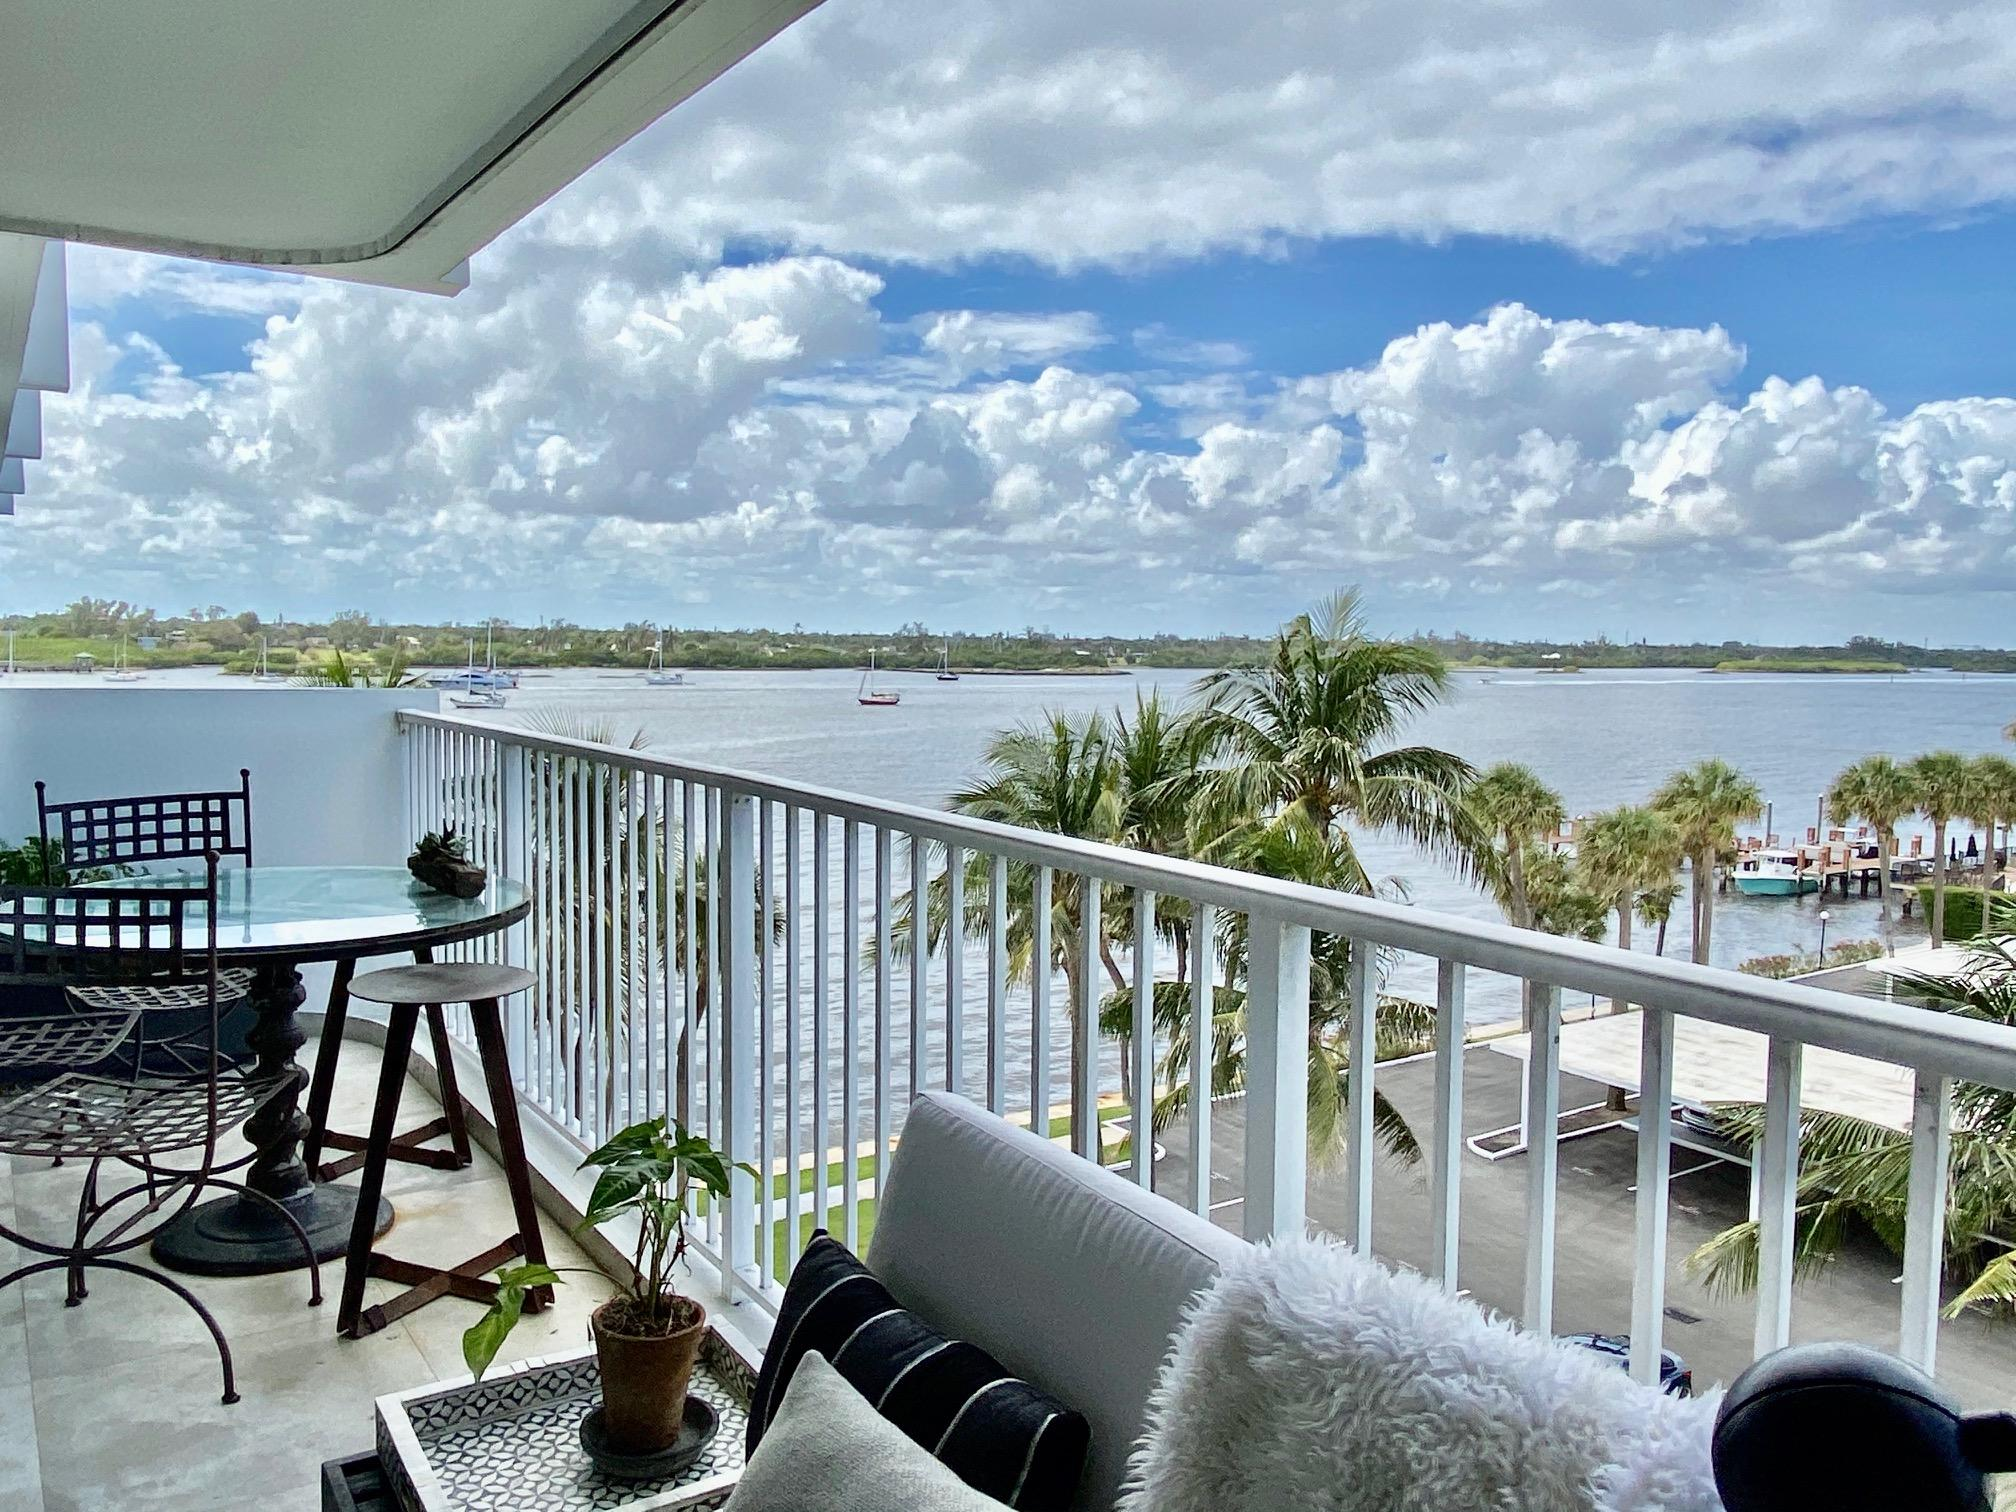 Perfectly renovated 2 bedroom 2 bathroom condo, with an open concept and wonderful views of the Intracoastal waterway. Building has a doorman, fitness center, library, card room, pool, barbecue area, outdoor decking, etc. No leasing the 1st year, and ok to lease once a year after that.